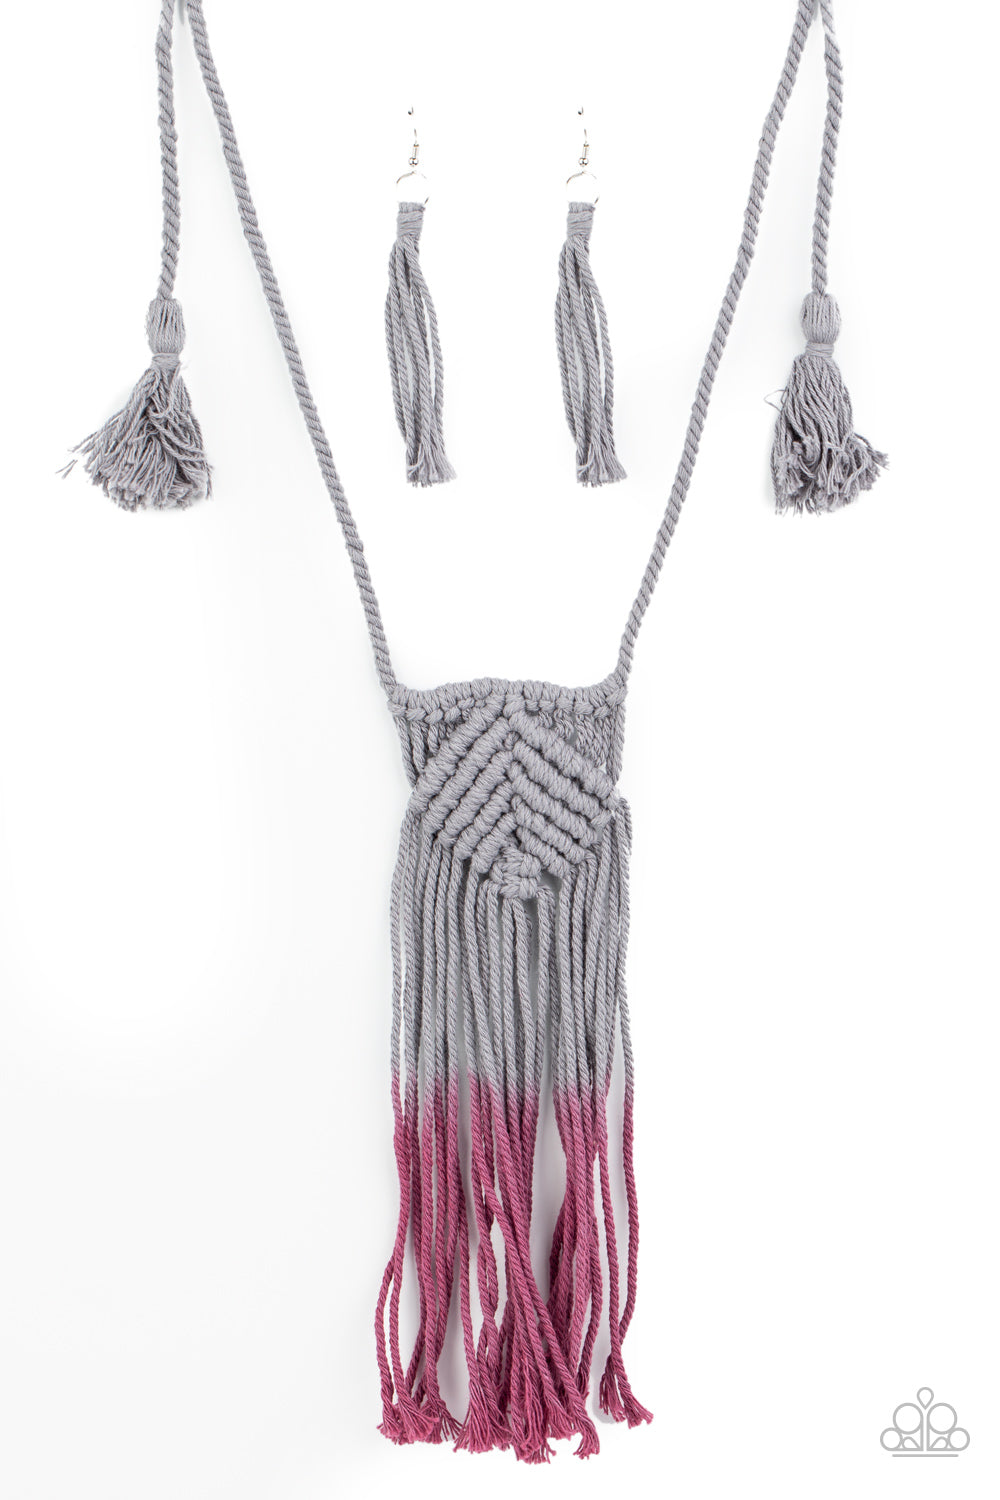 five-dollar-jewelry-look-at-macrame-now-purple-necklace-paparazzi-accessories